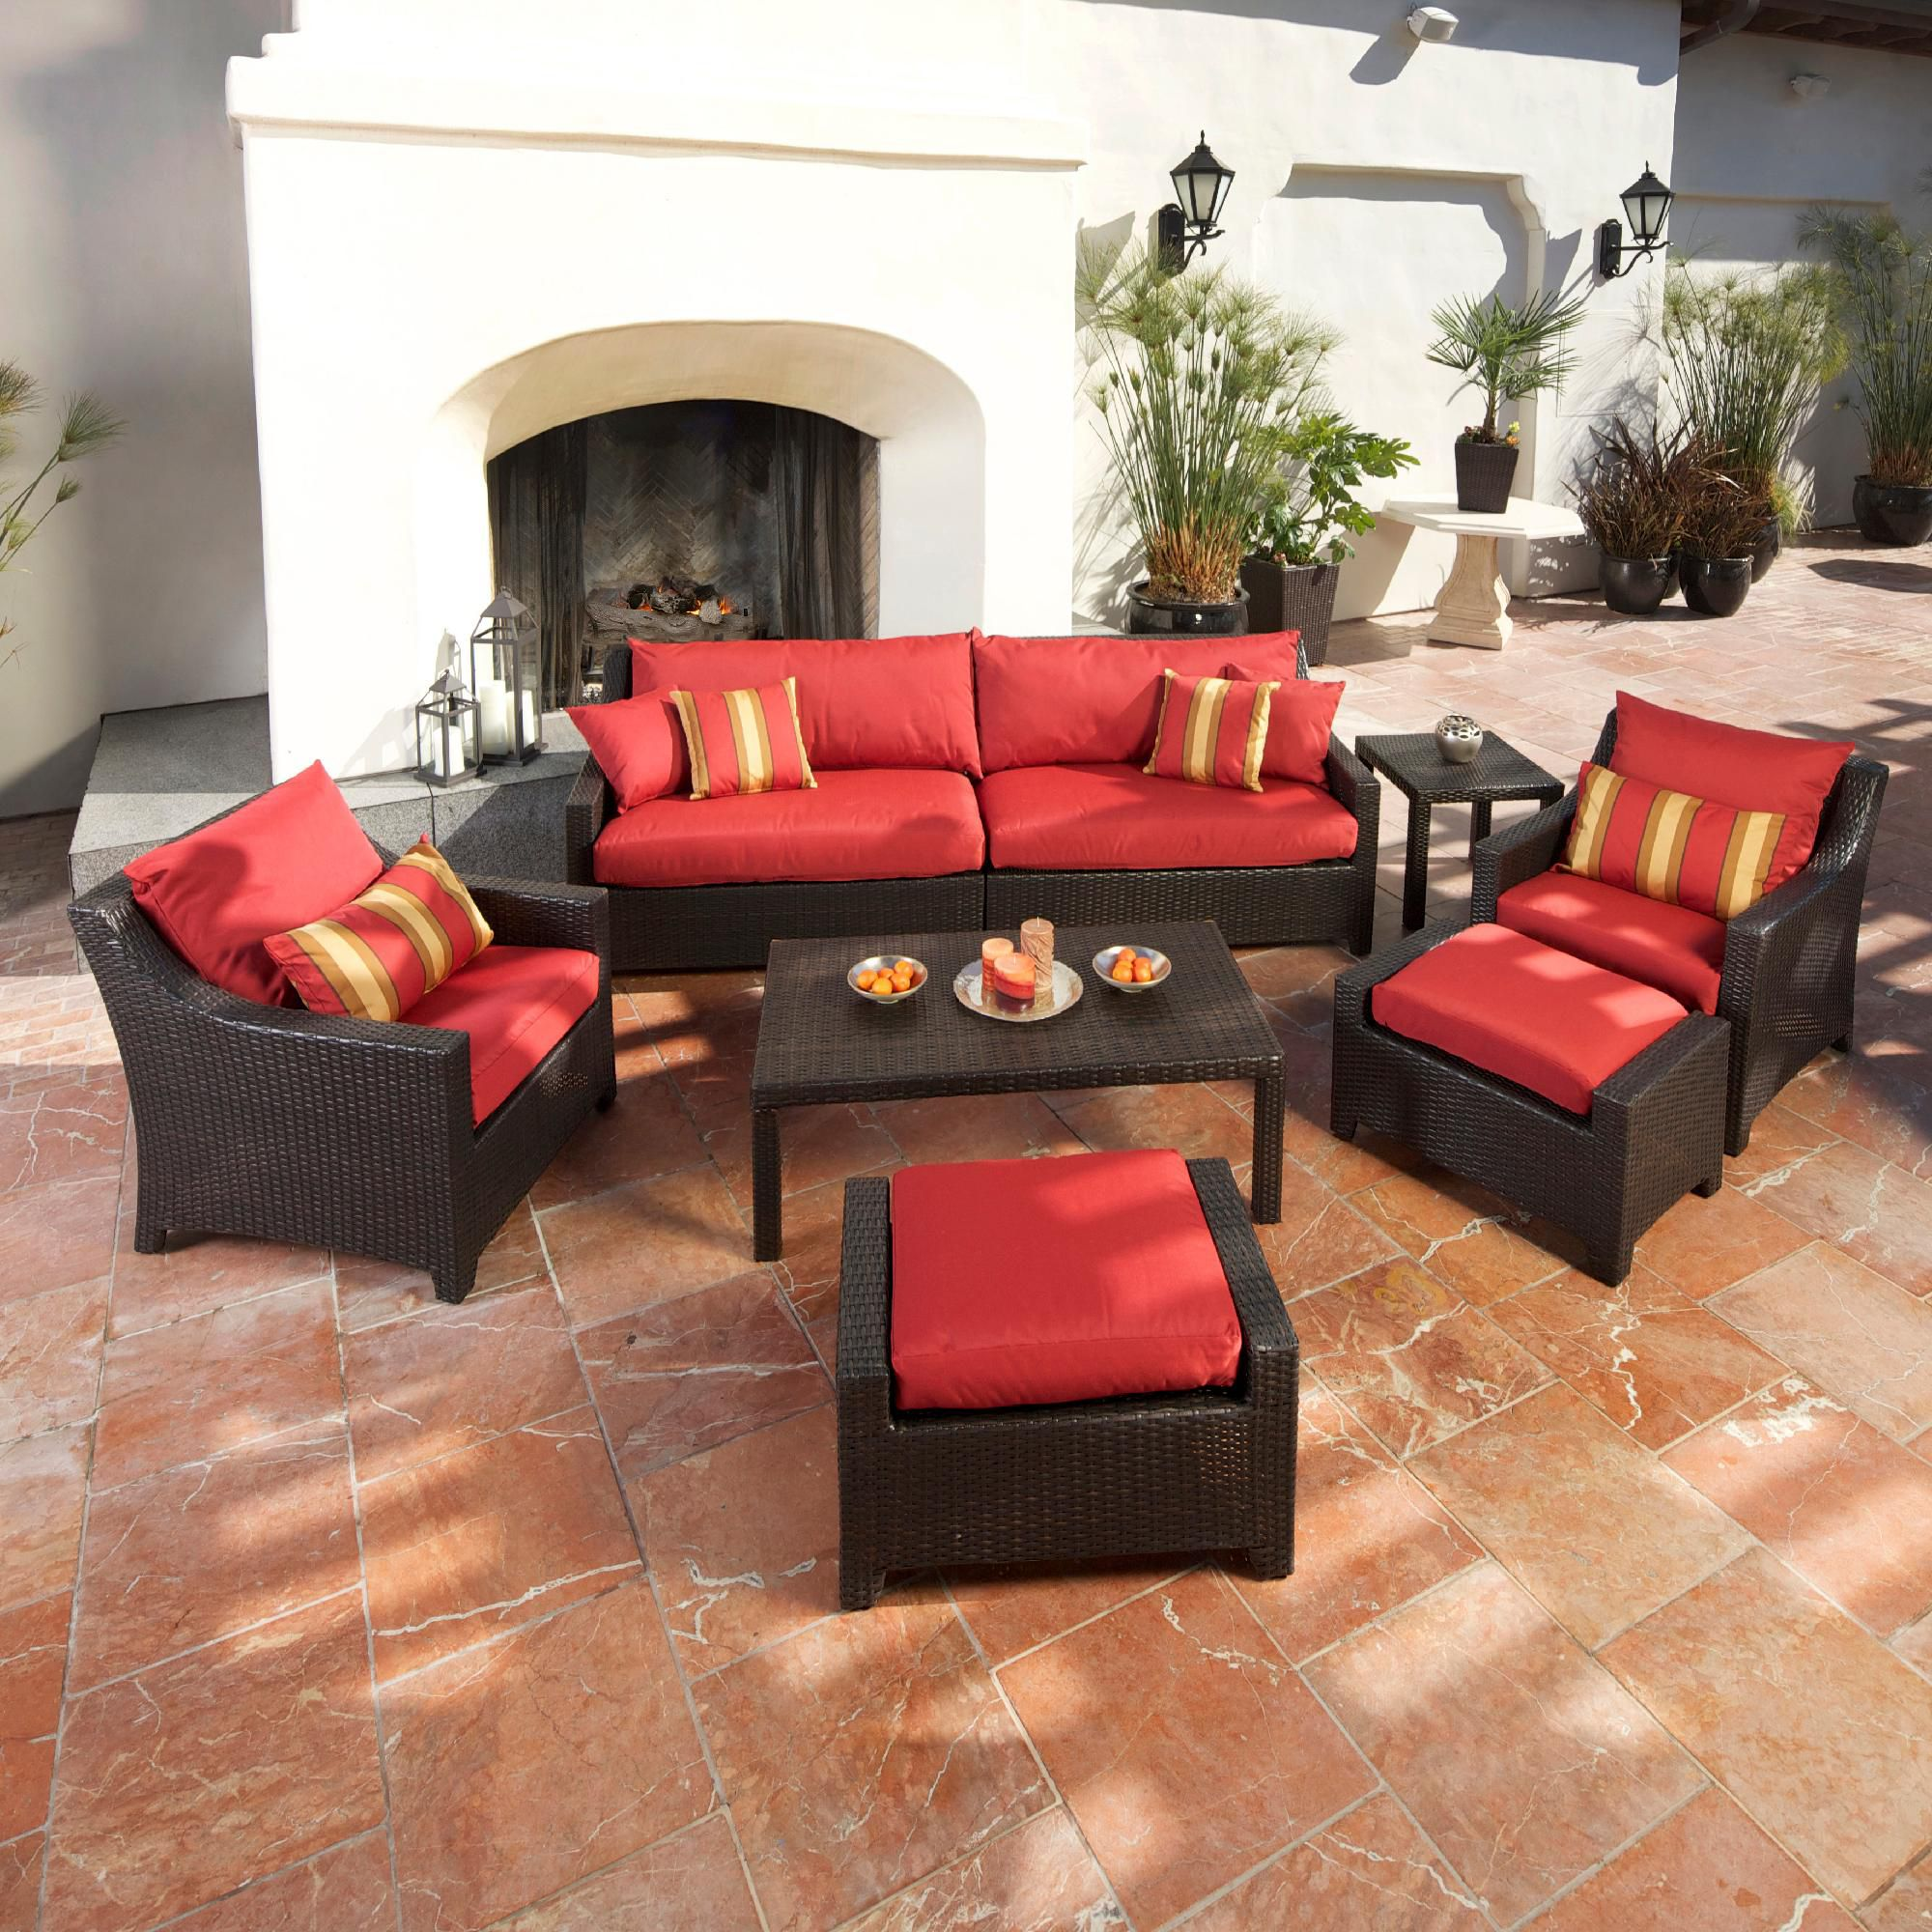 Rst Brands Cantina 8-piece Sofa Club Chair And Ottomans Set